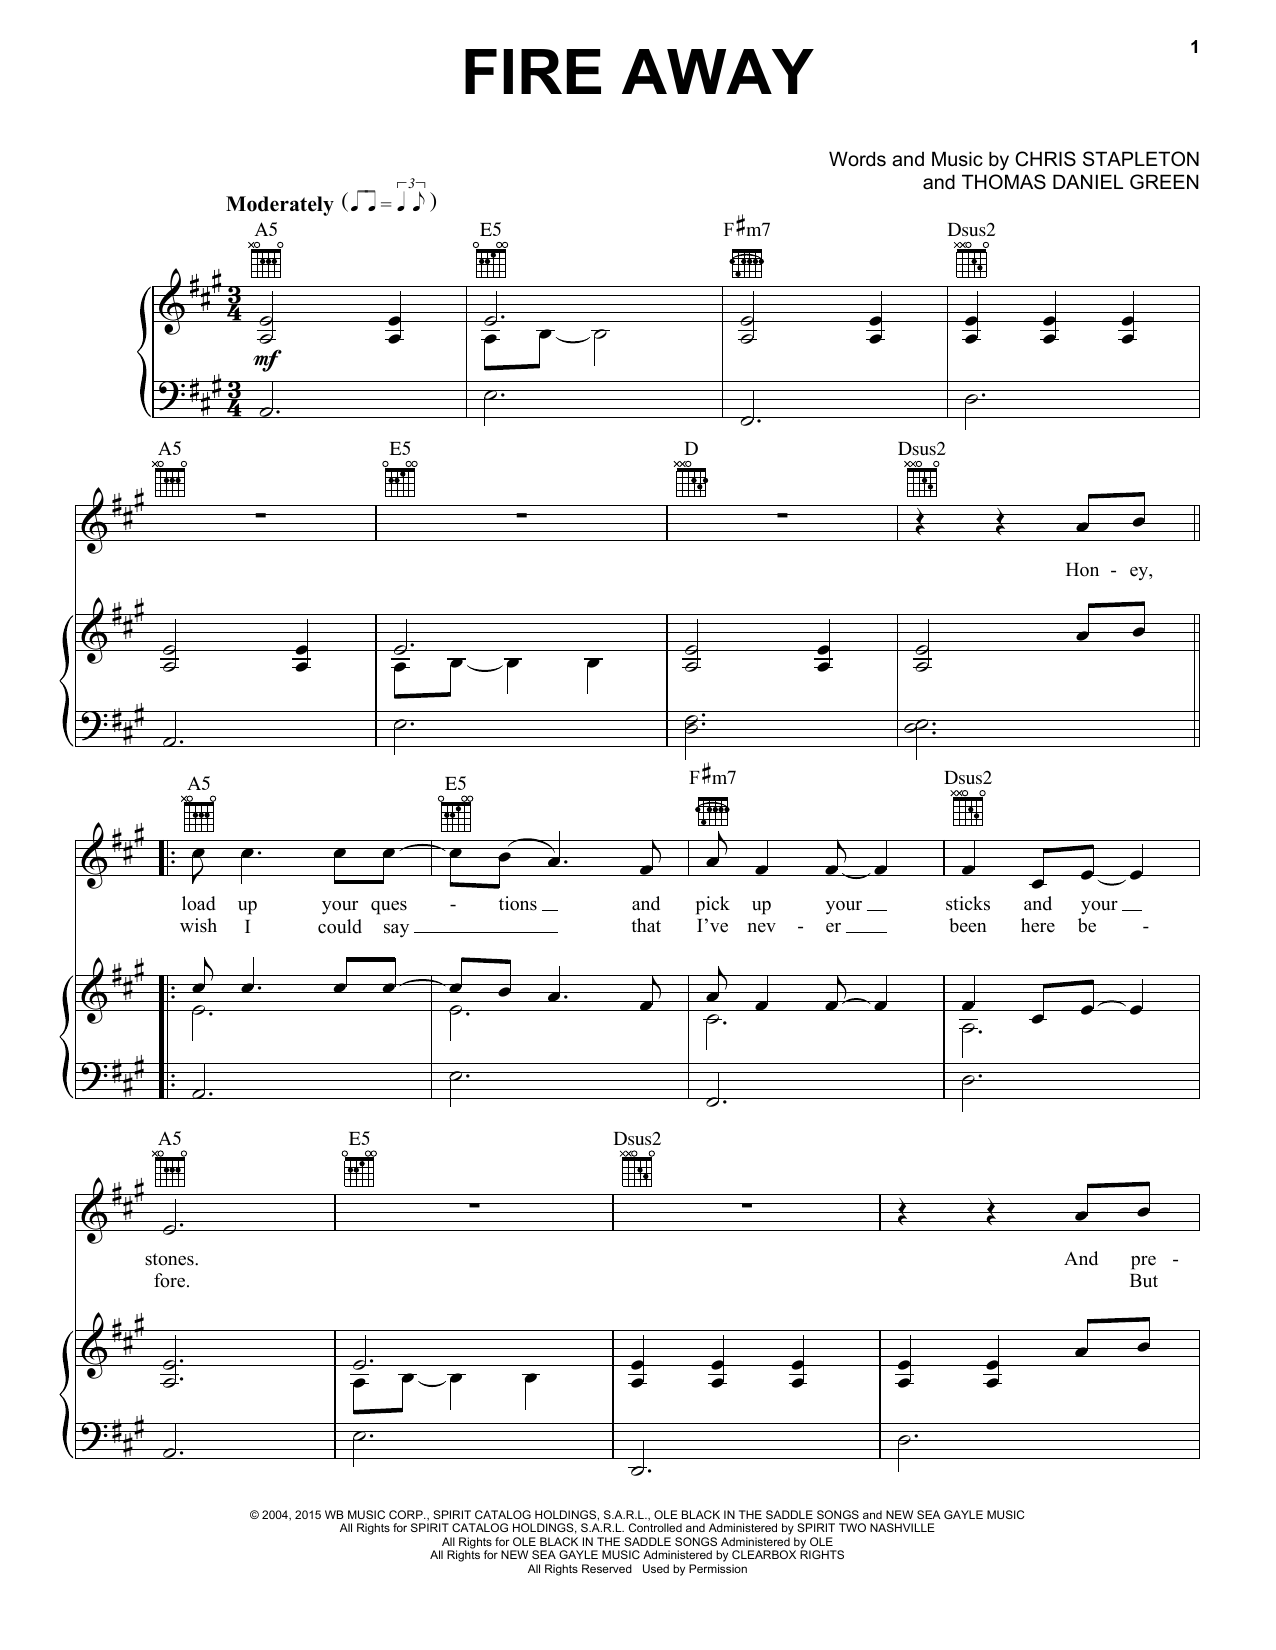 Fire away sheet music direct sheet preview fire away hexwebz Gallery